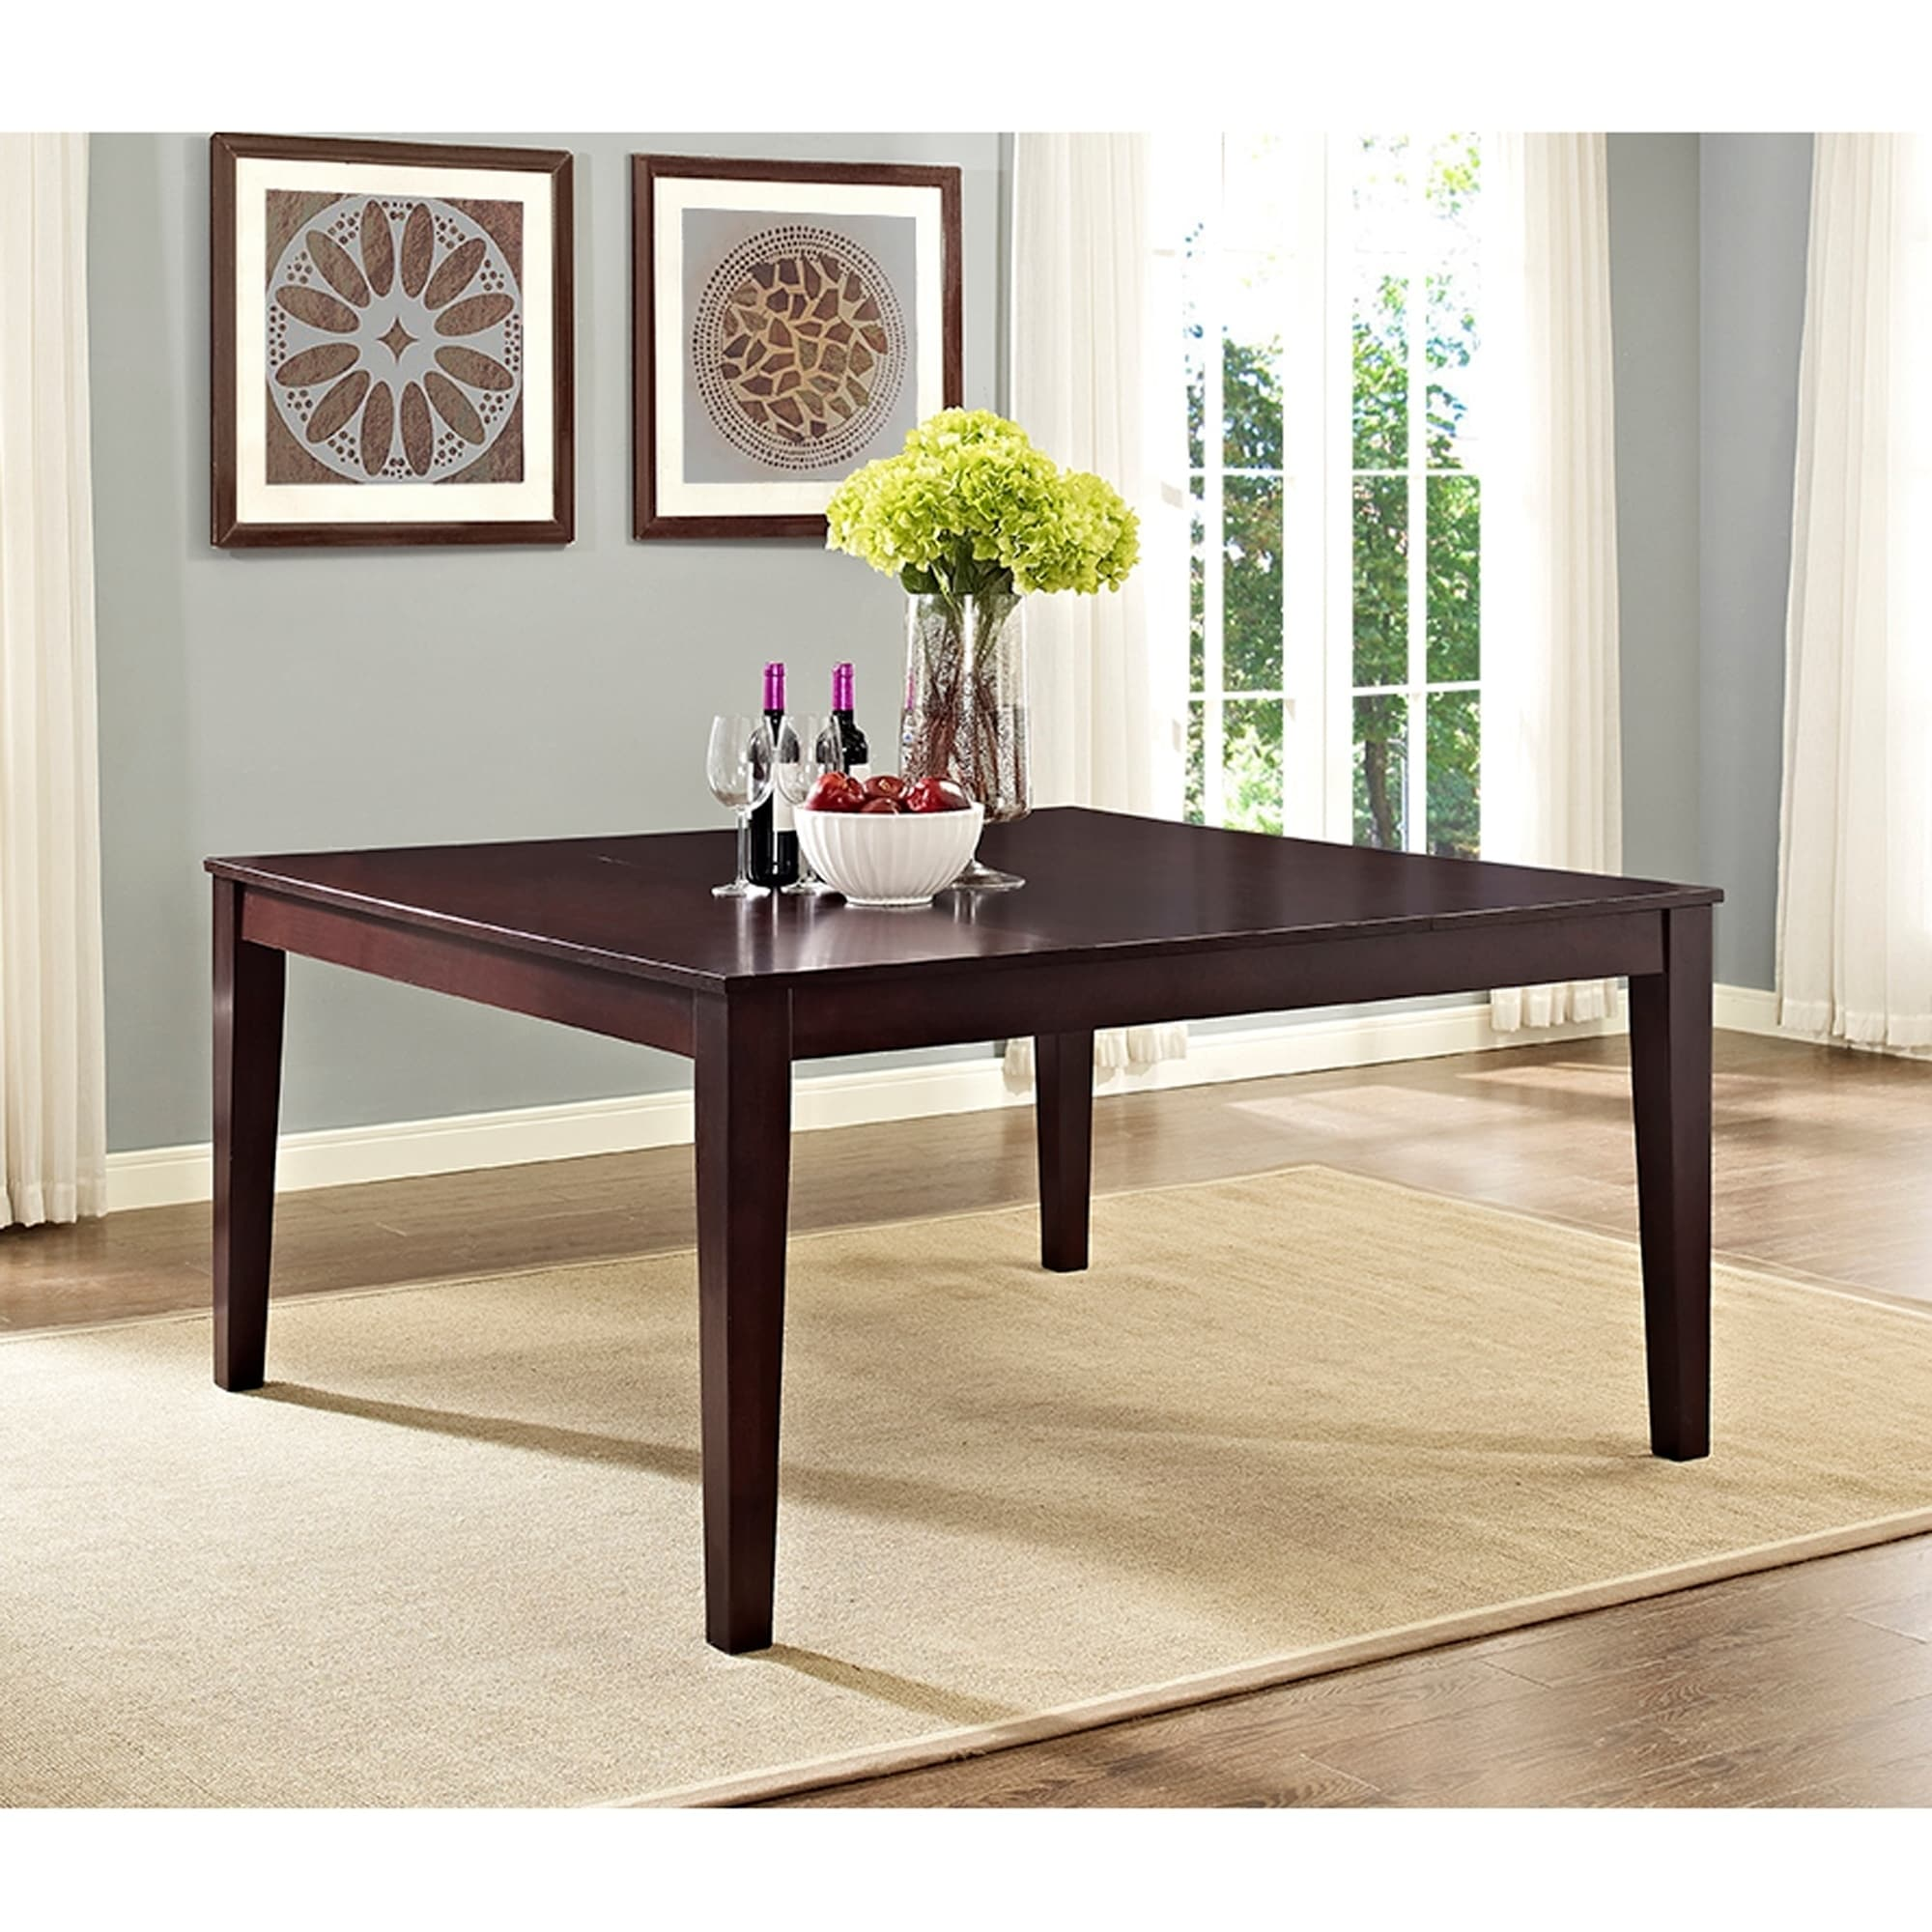 Dining Table Designs Middlebrook Designs 60